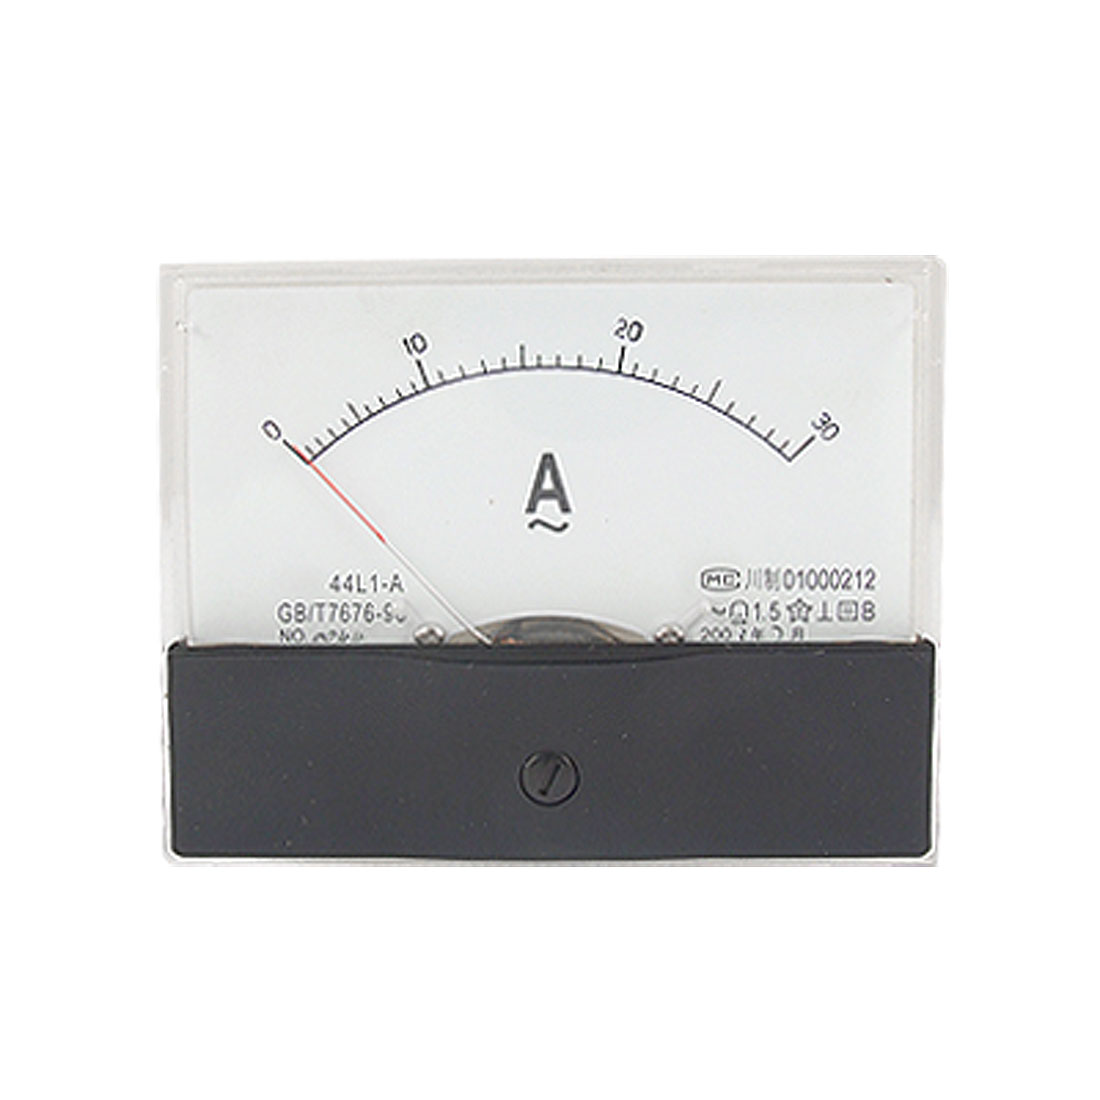 Panel Mount AC 0-30A Current Meter Measuring Tool 44L1-A